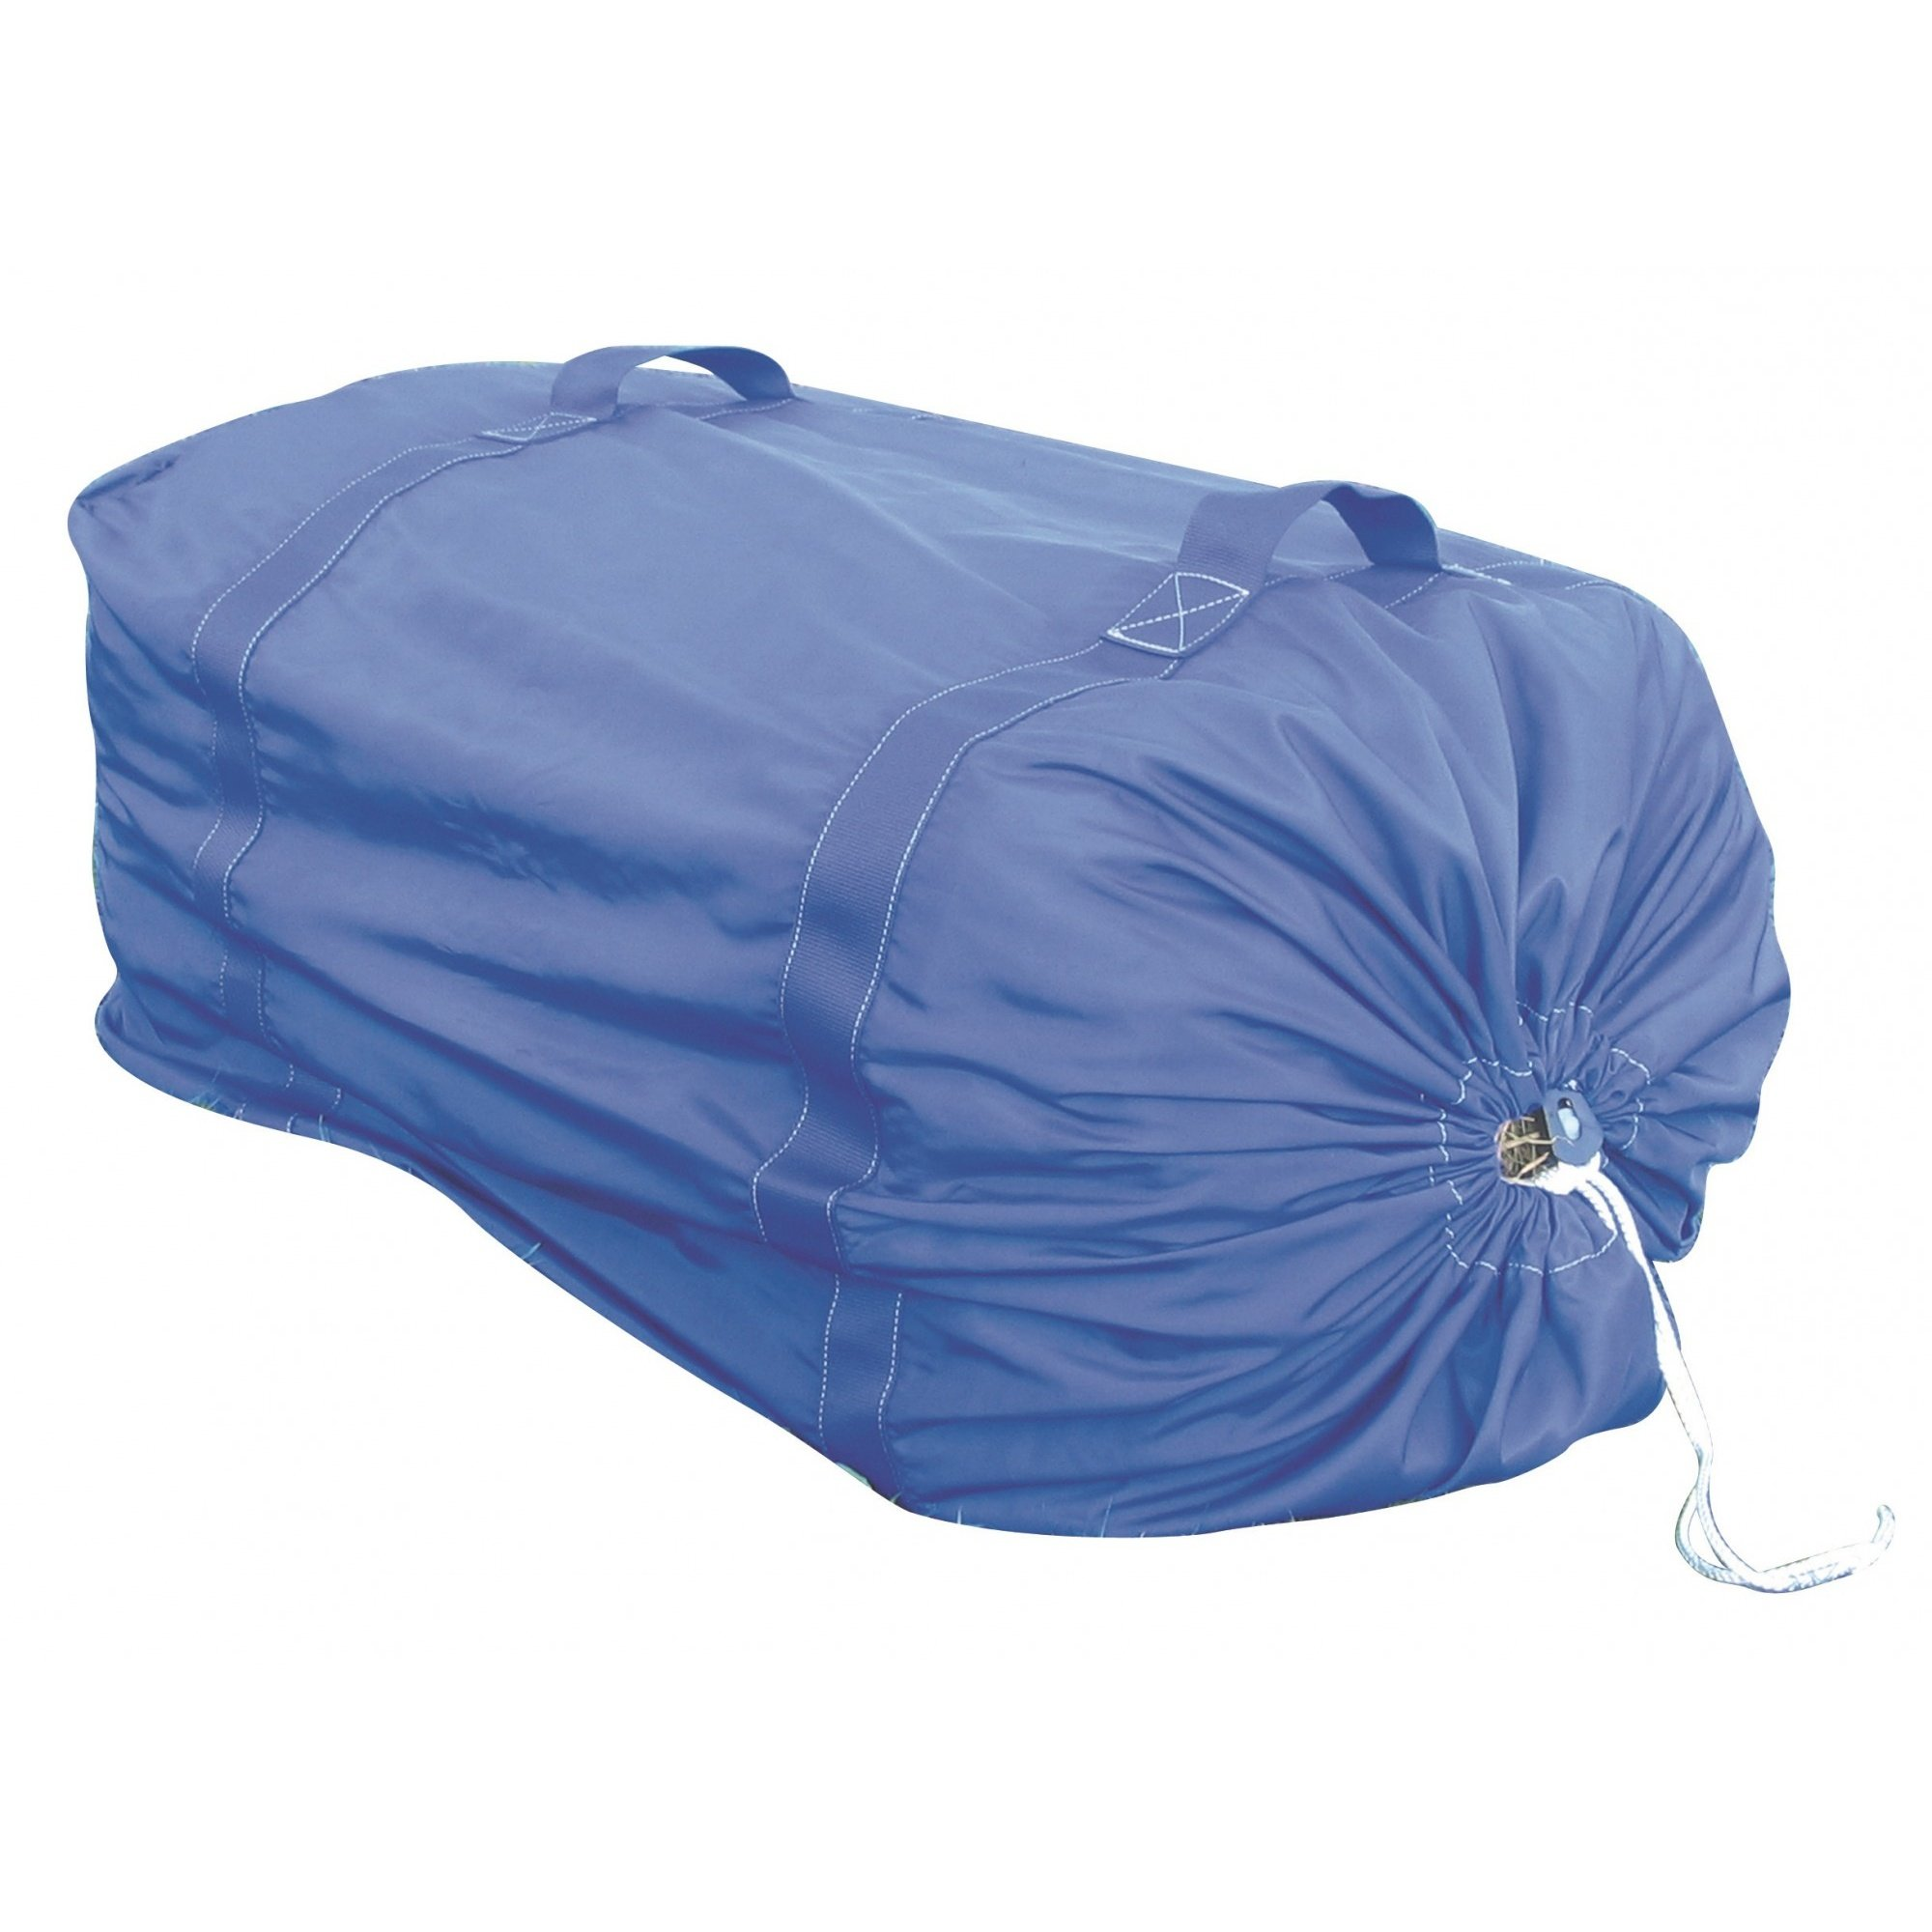 Moorland Rider Bale Carry Sack (46 x 23.6in) (Blue) by Moorland Rider